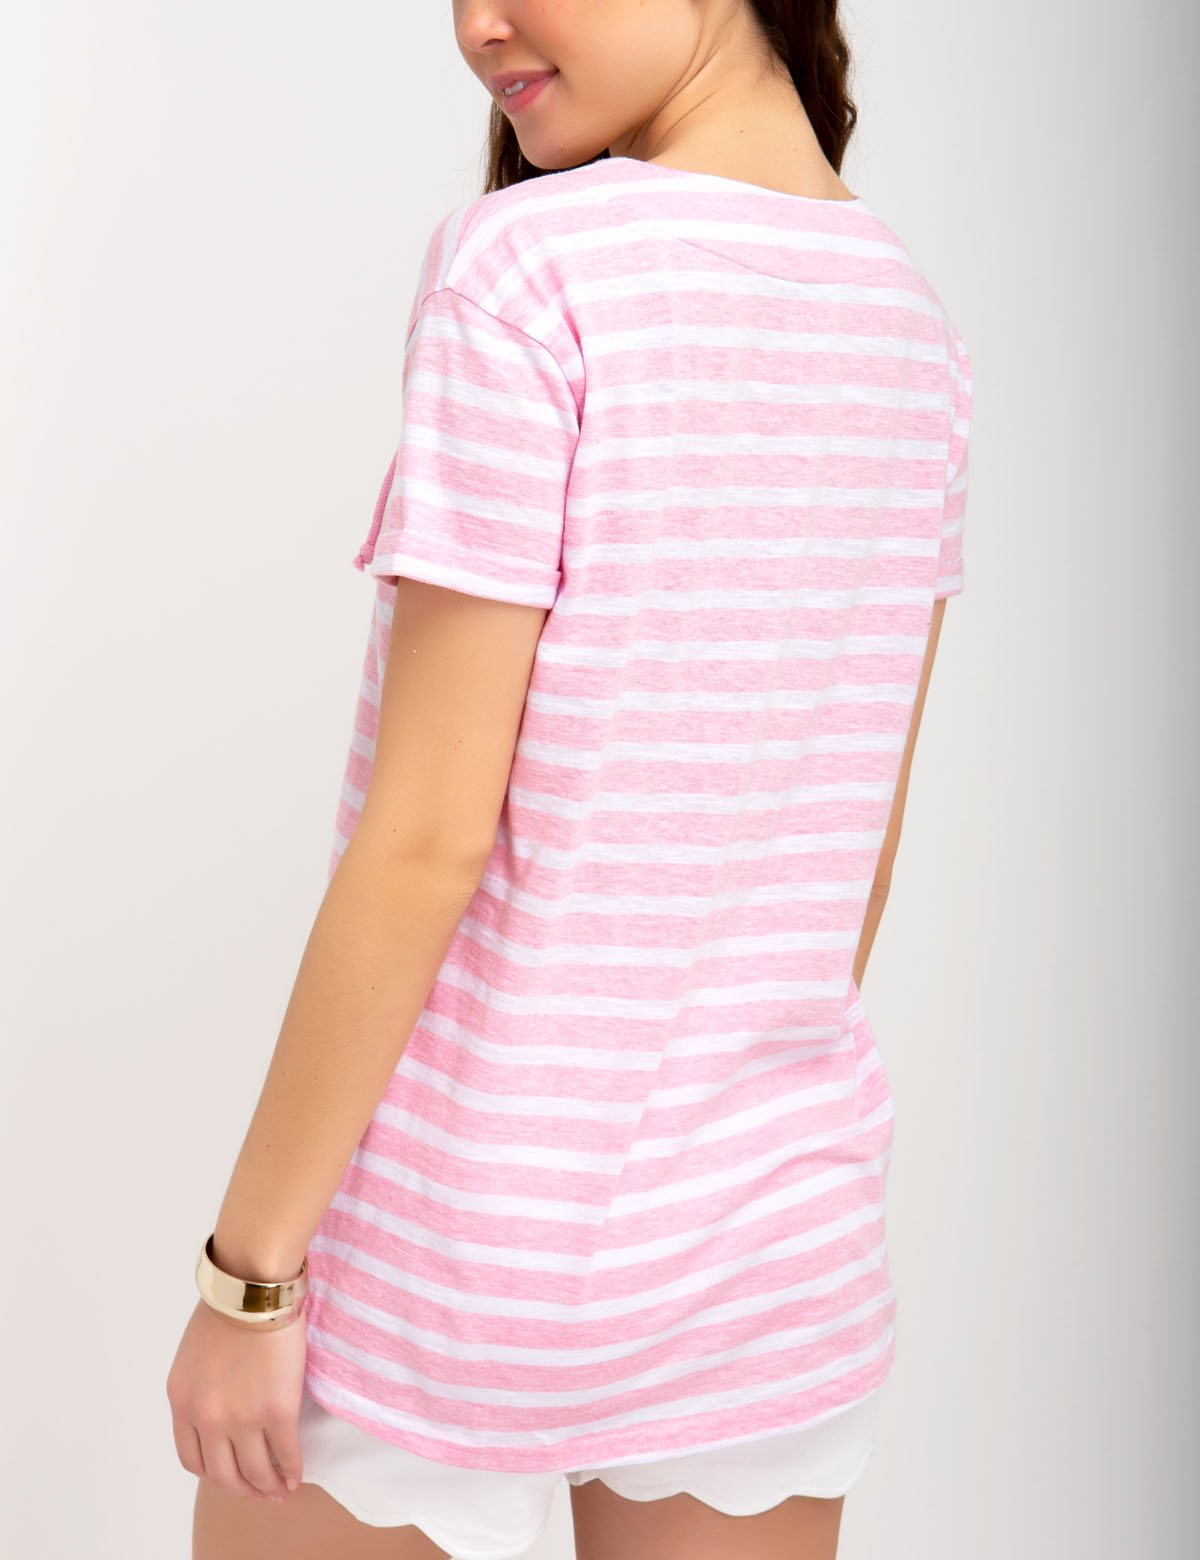 STRIPED LACE-UP TOP - U.S. Polo Assn.